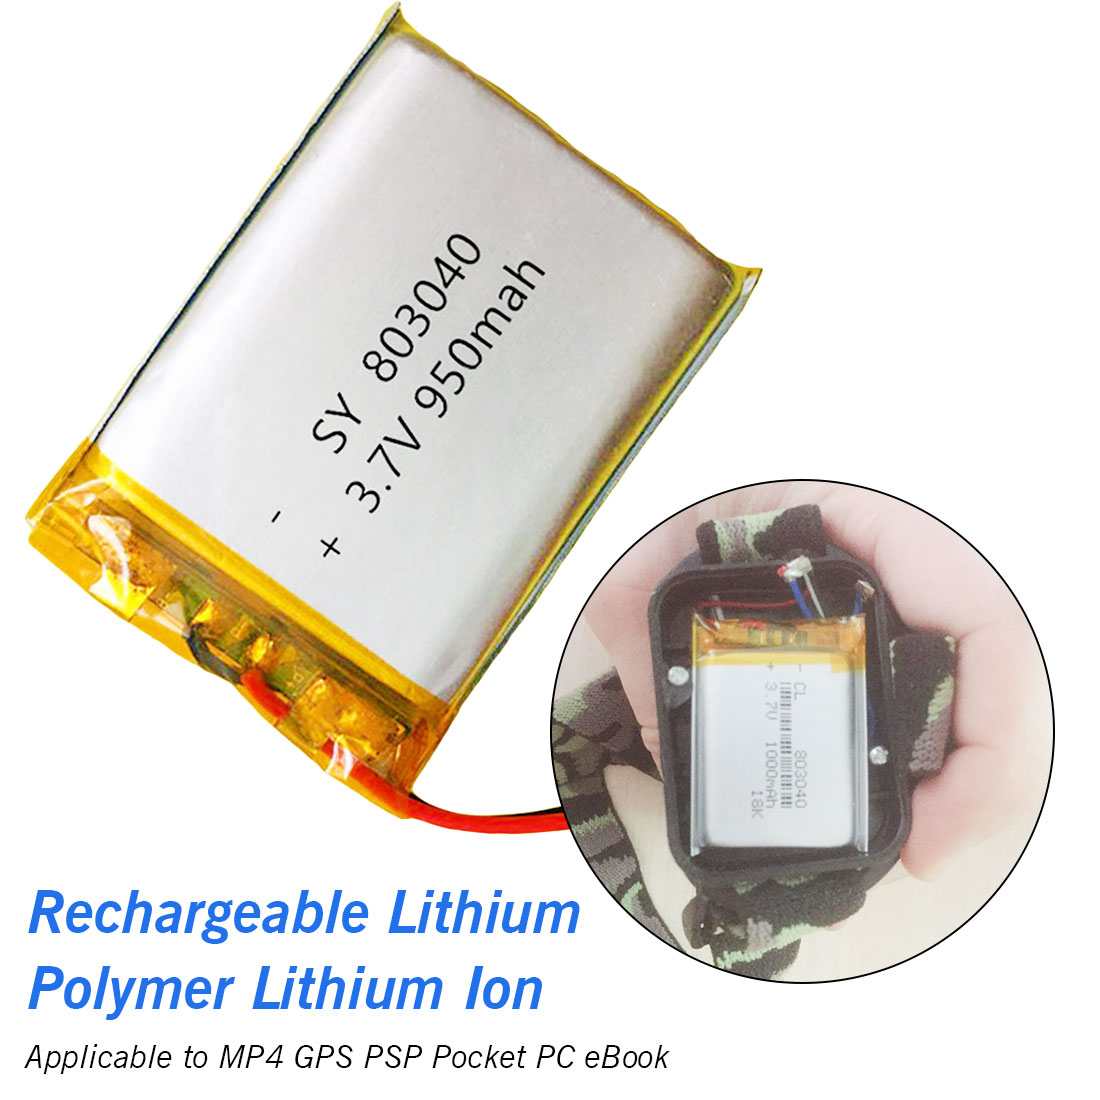 High Capacity Rechargeable <font><b>Battery</b></font> 803040 <font><b>3.7V</b></font> <font><b>950mAh</b></font> Lithium Polymer <font><b>Li</b></font>-Po <font><b>ion</b></font> <font><b>Battery</b></font> For MP4 MP5 GPS PSP Mobile Pocket PC image